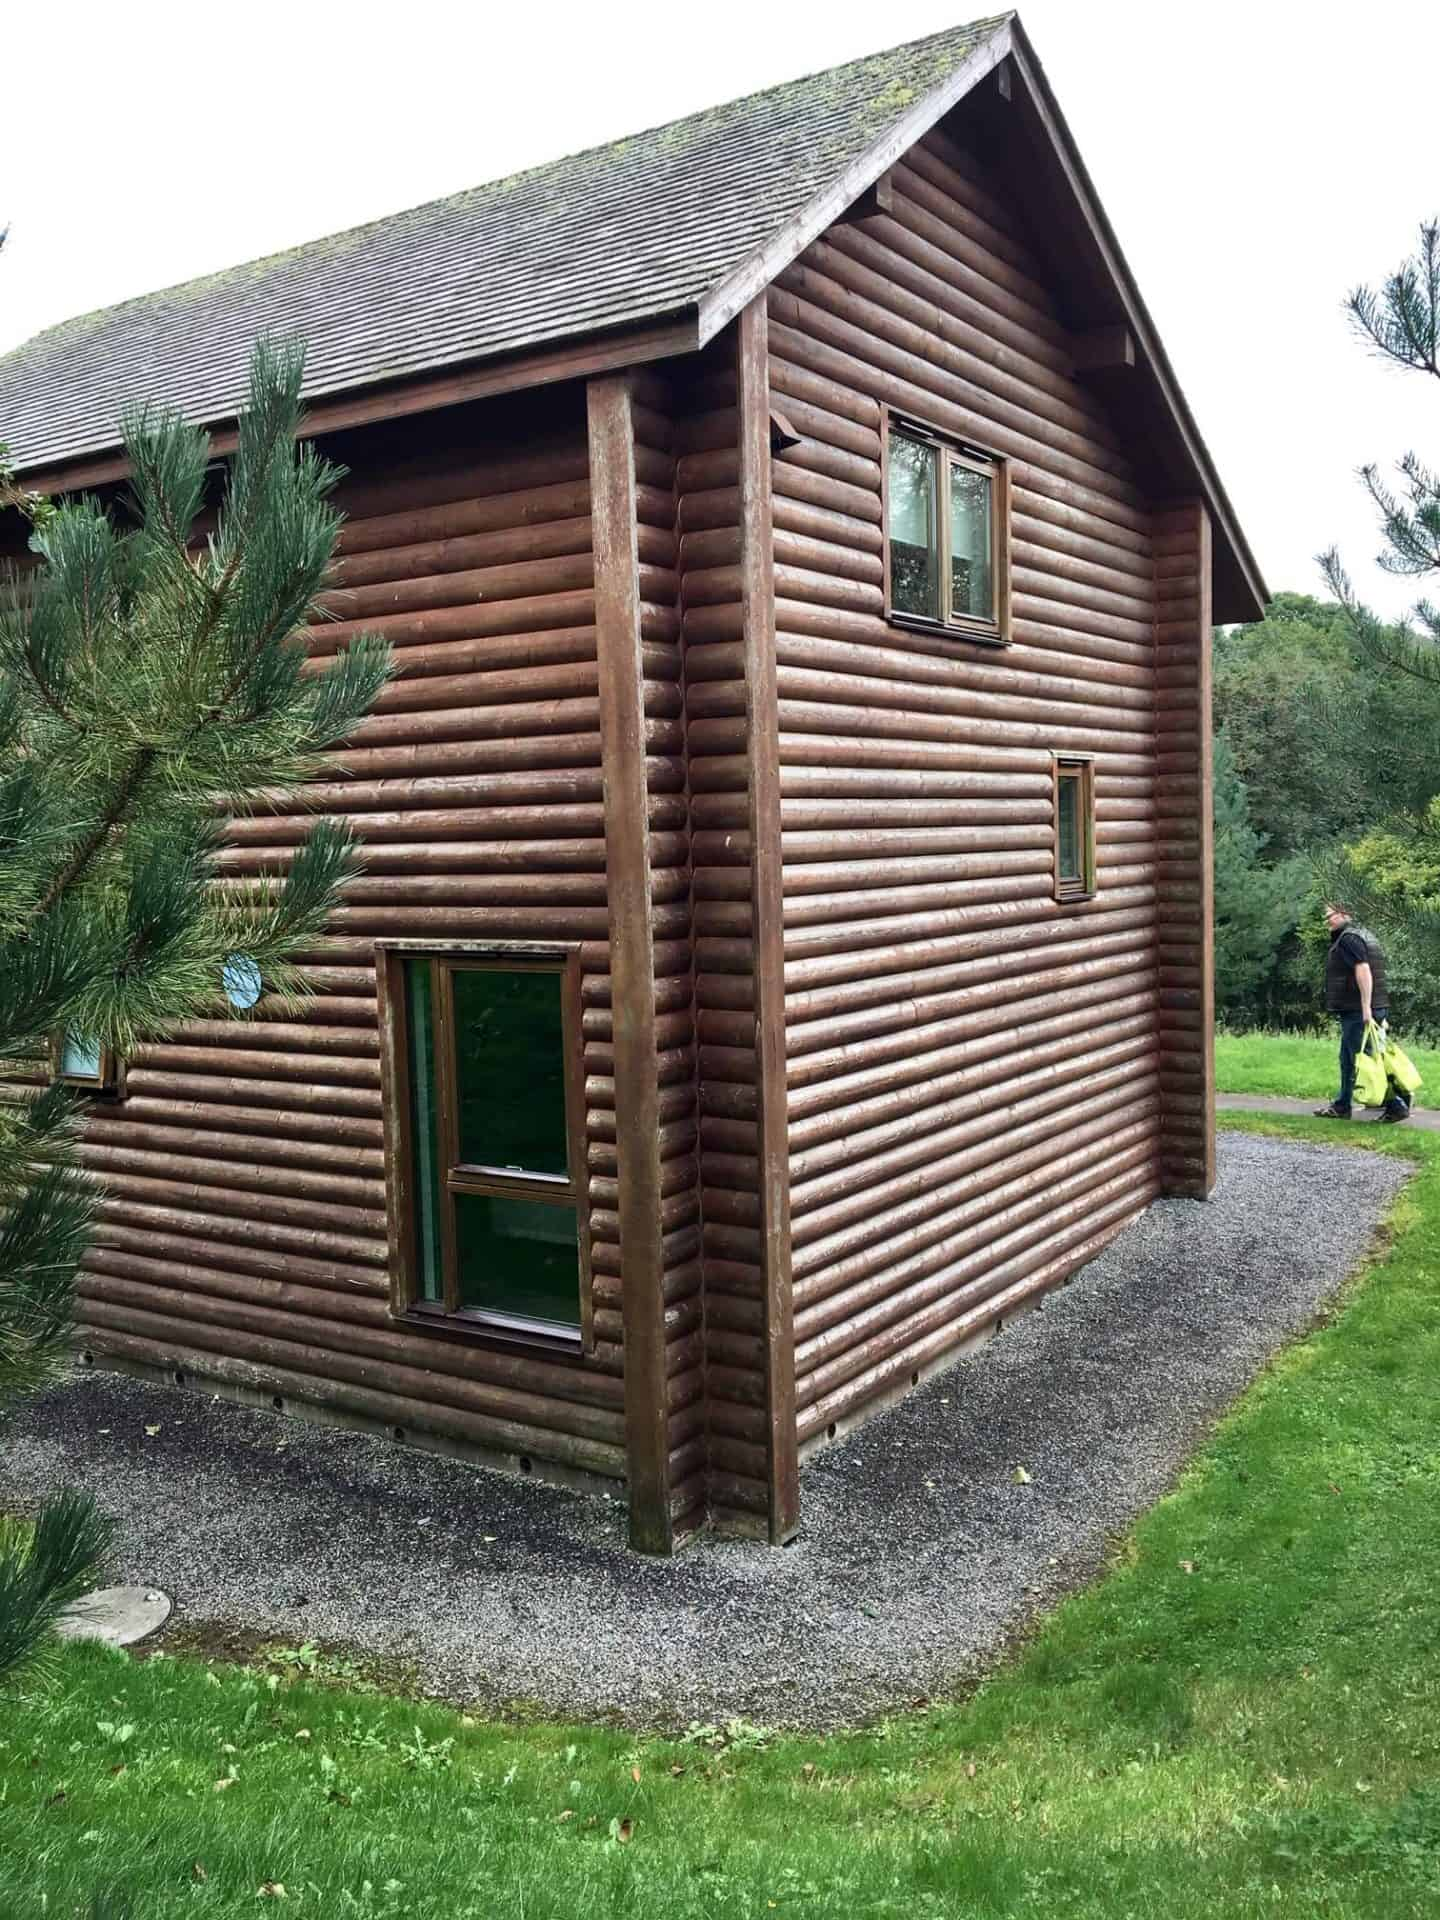 Our Family Holiday at Bluestone Wales - lodge